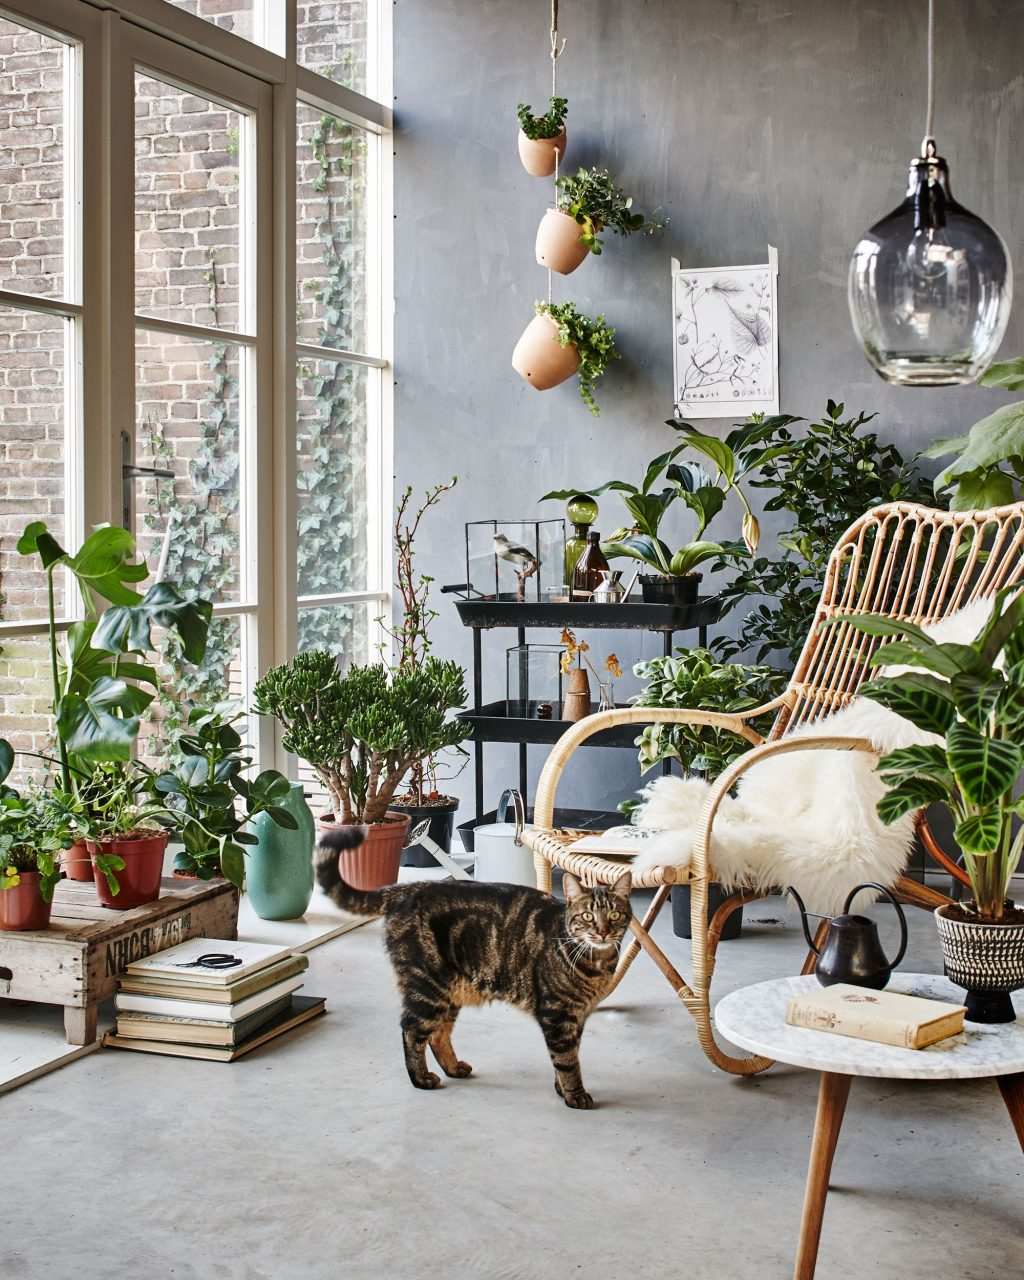 Botanic Living Room Orangery With A Rattan Chair Plants Flowers